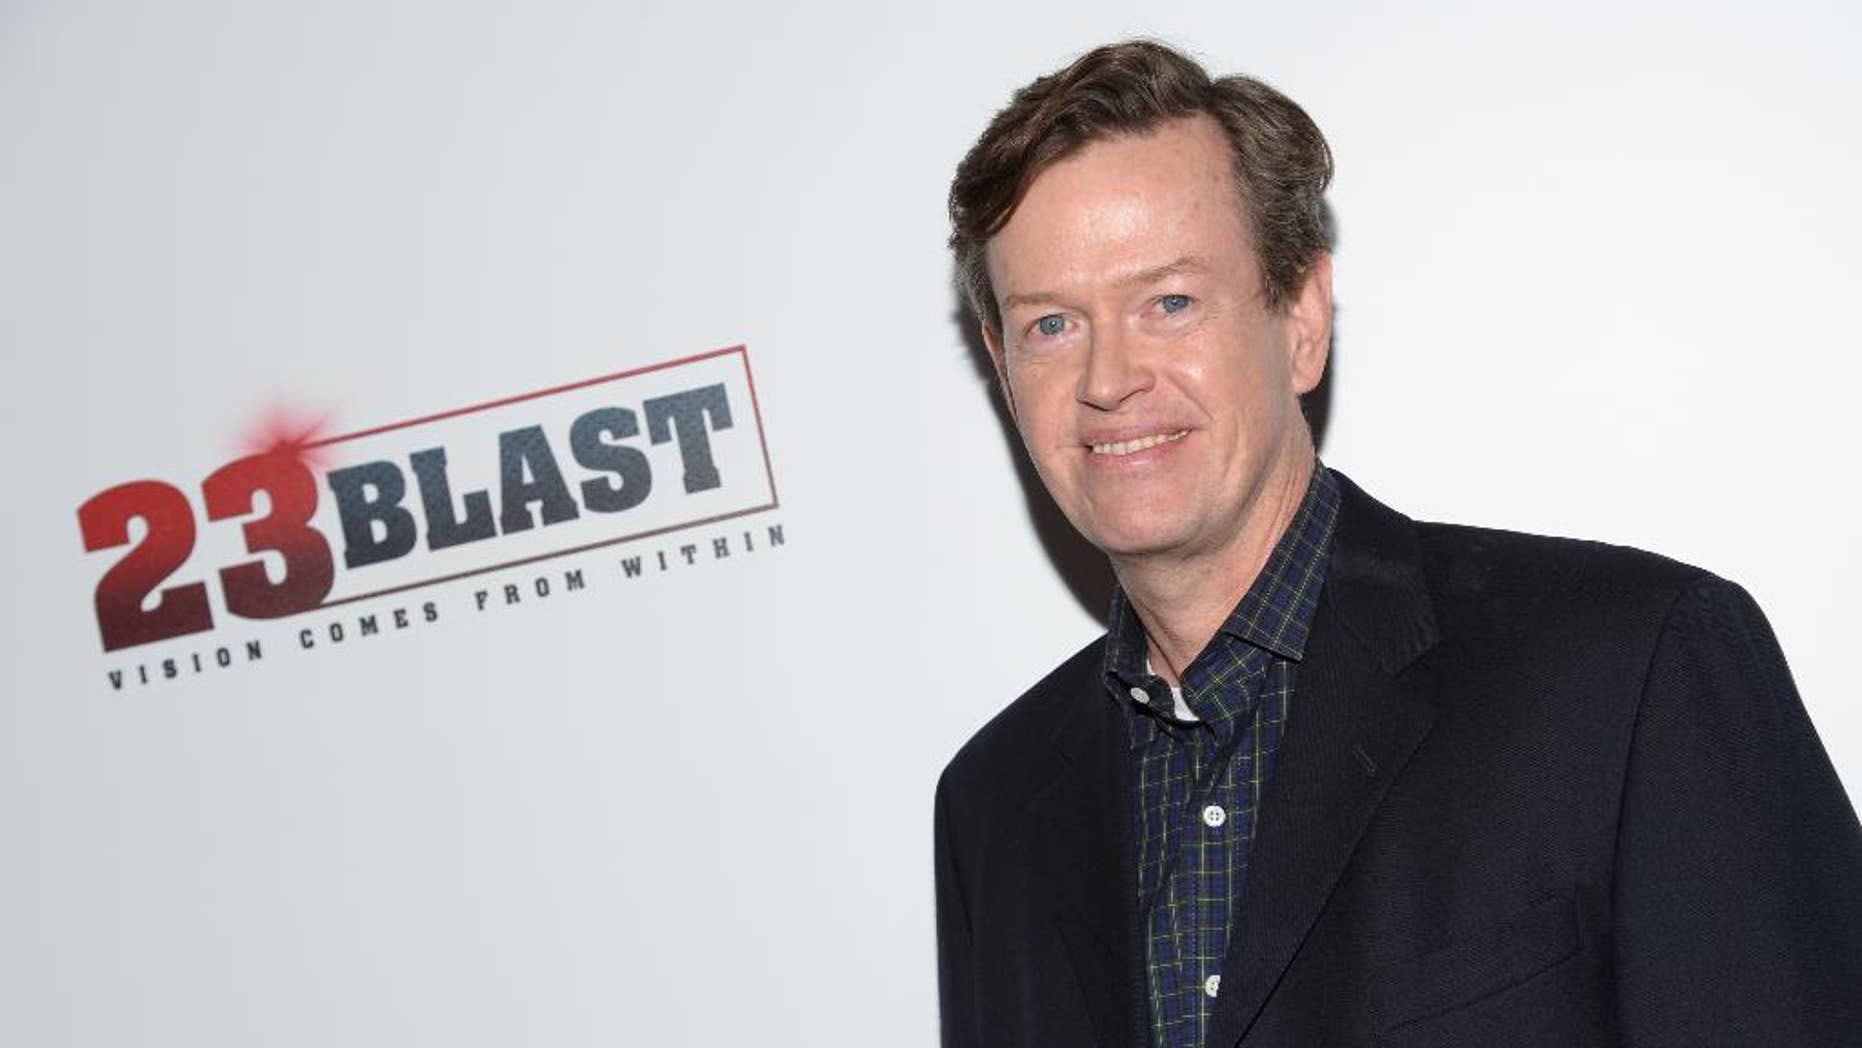 """FILE - In this Oct. 20, 2014 file photo, Actor/director Dylan Baker attends the premiere of """"23Blast"""" in New York. Baker tried to rescue an elderly neighbor before escaping a high-rise apartment fire in Manhattan, on Tuesday, Sept. 1, 2015.  Baker, who has a recurring TV role in """"The Good Wife,"""" said he had just returned home when an alarm went off and he saw smoke coming from his neighbor's apartment. Firefighters quickly put out the fire. The woman was hospitalized in critical condition. (Photo by Evan Agostini/Invision/AP)"""